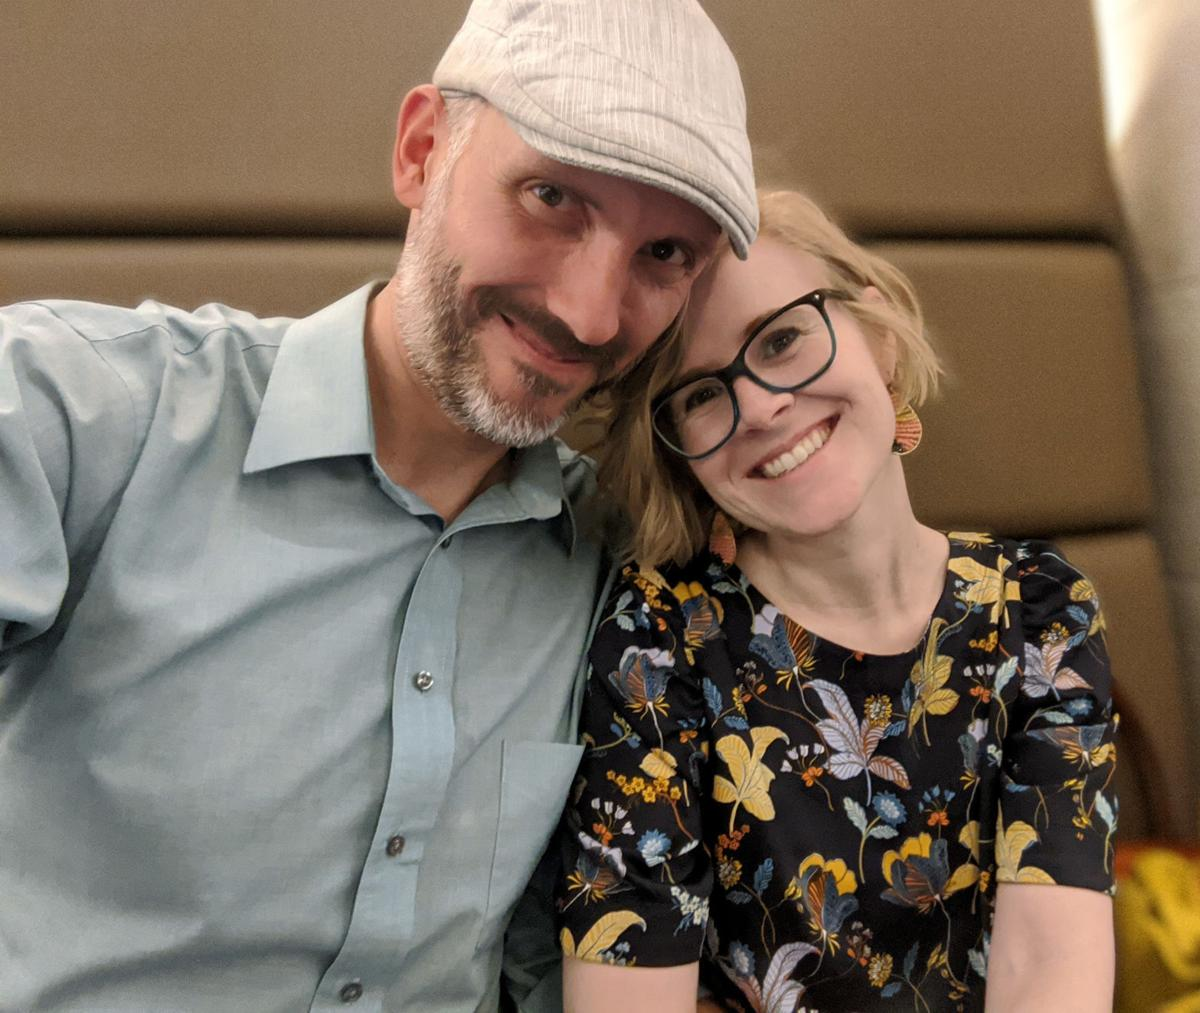 A pandemic year couldn't stop this whirlwind romance